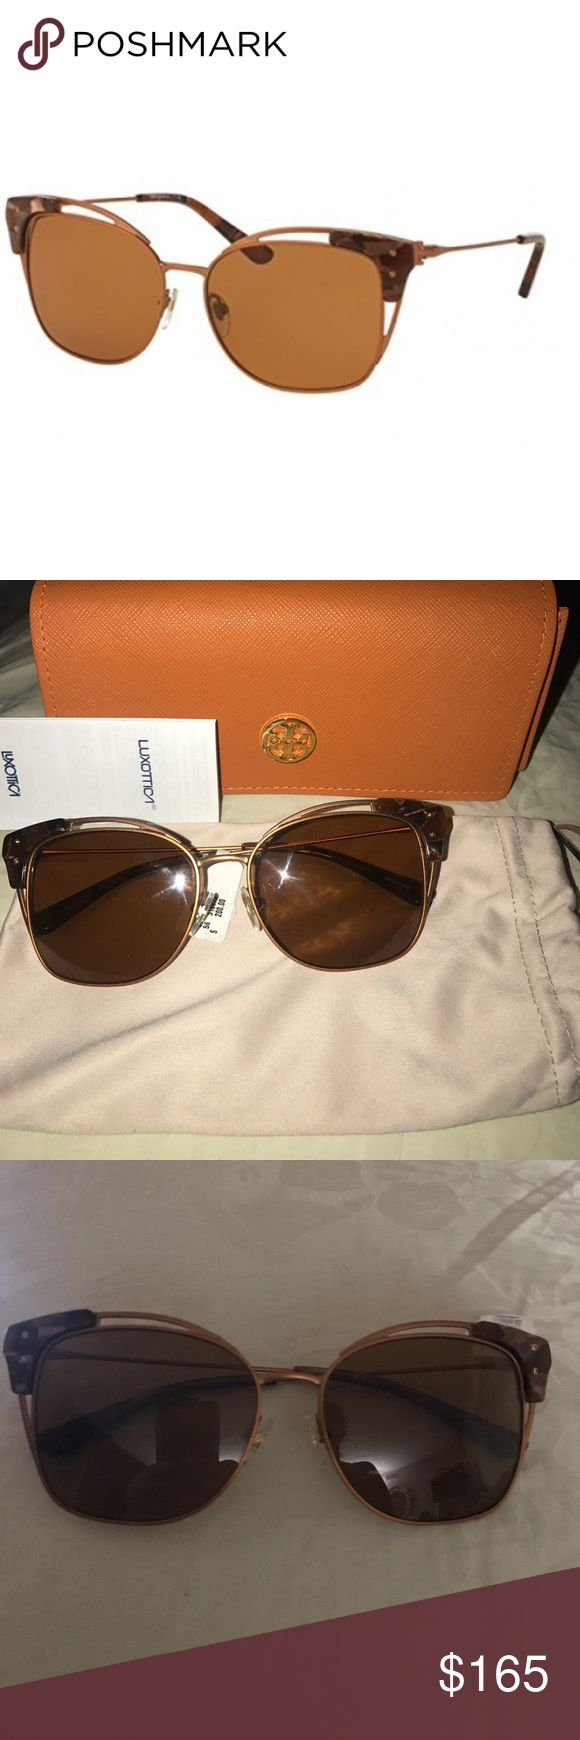 Tory Burch sunglasses Tory Burch TY6049 Sunglasses 315073-56 - Rose Gold/brown Mosaic Frame, Solid Amber Lenses.     Brand new with tags attached and 2 cases. Tory Burch Accessories Sunglasses